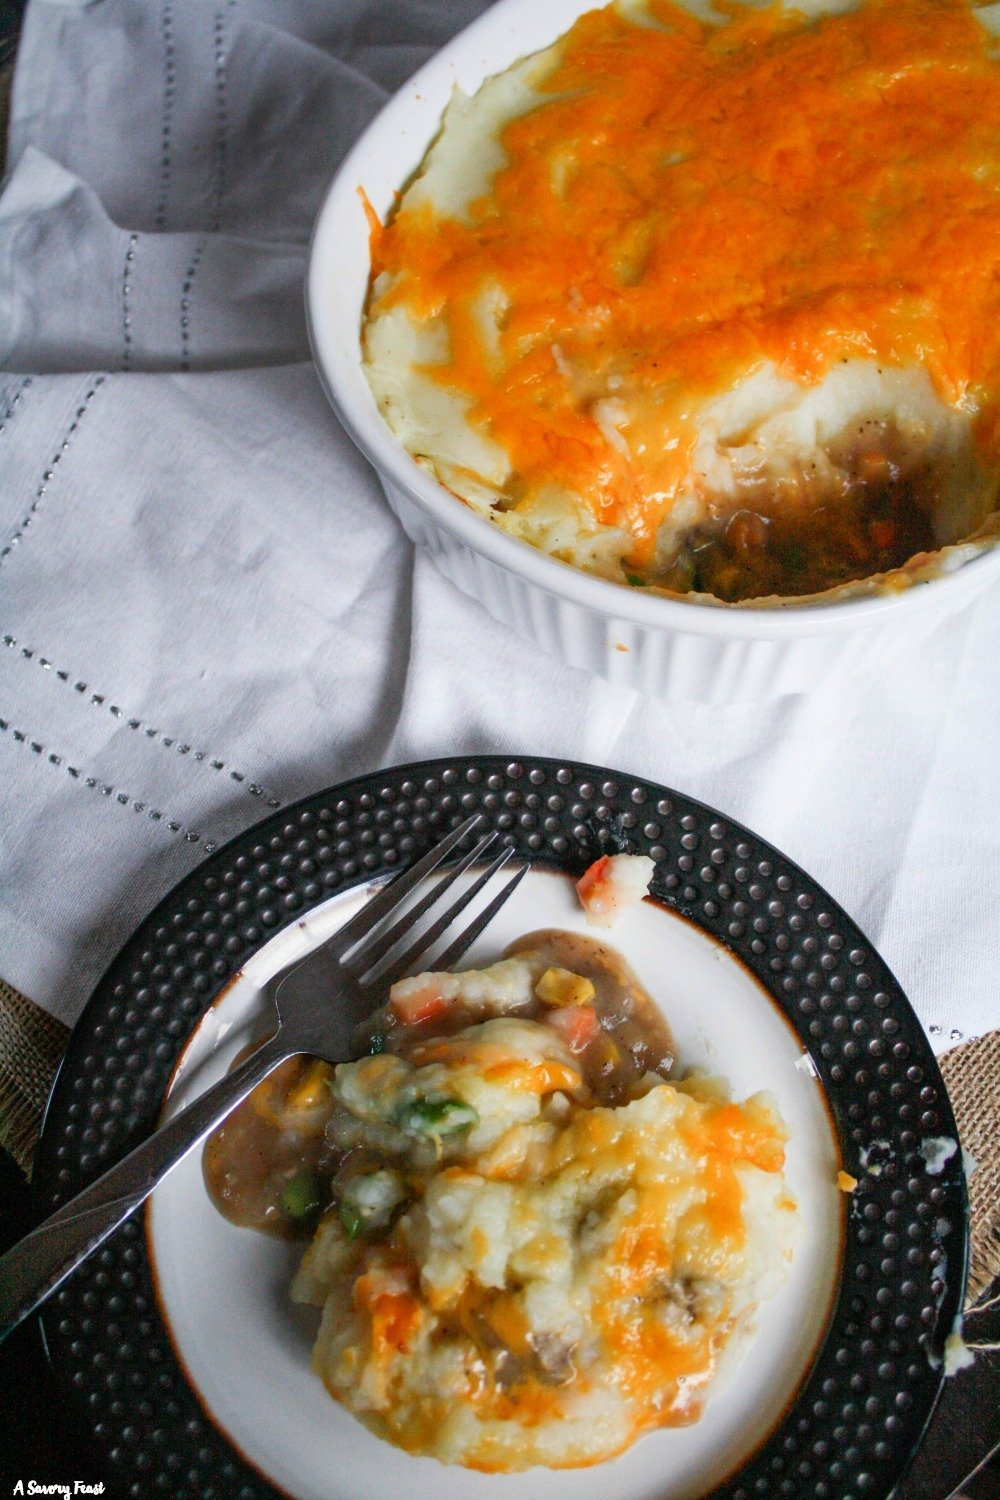 Try this delicious take on shepherd's pie for dinner tonight! Cheesy Steak Shepherd's Pie is made with steak instead of ground beef and packed with cheese. This recipe also uses beef bone broth for added nutrition.